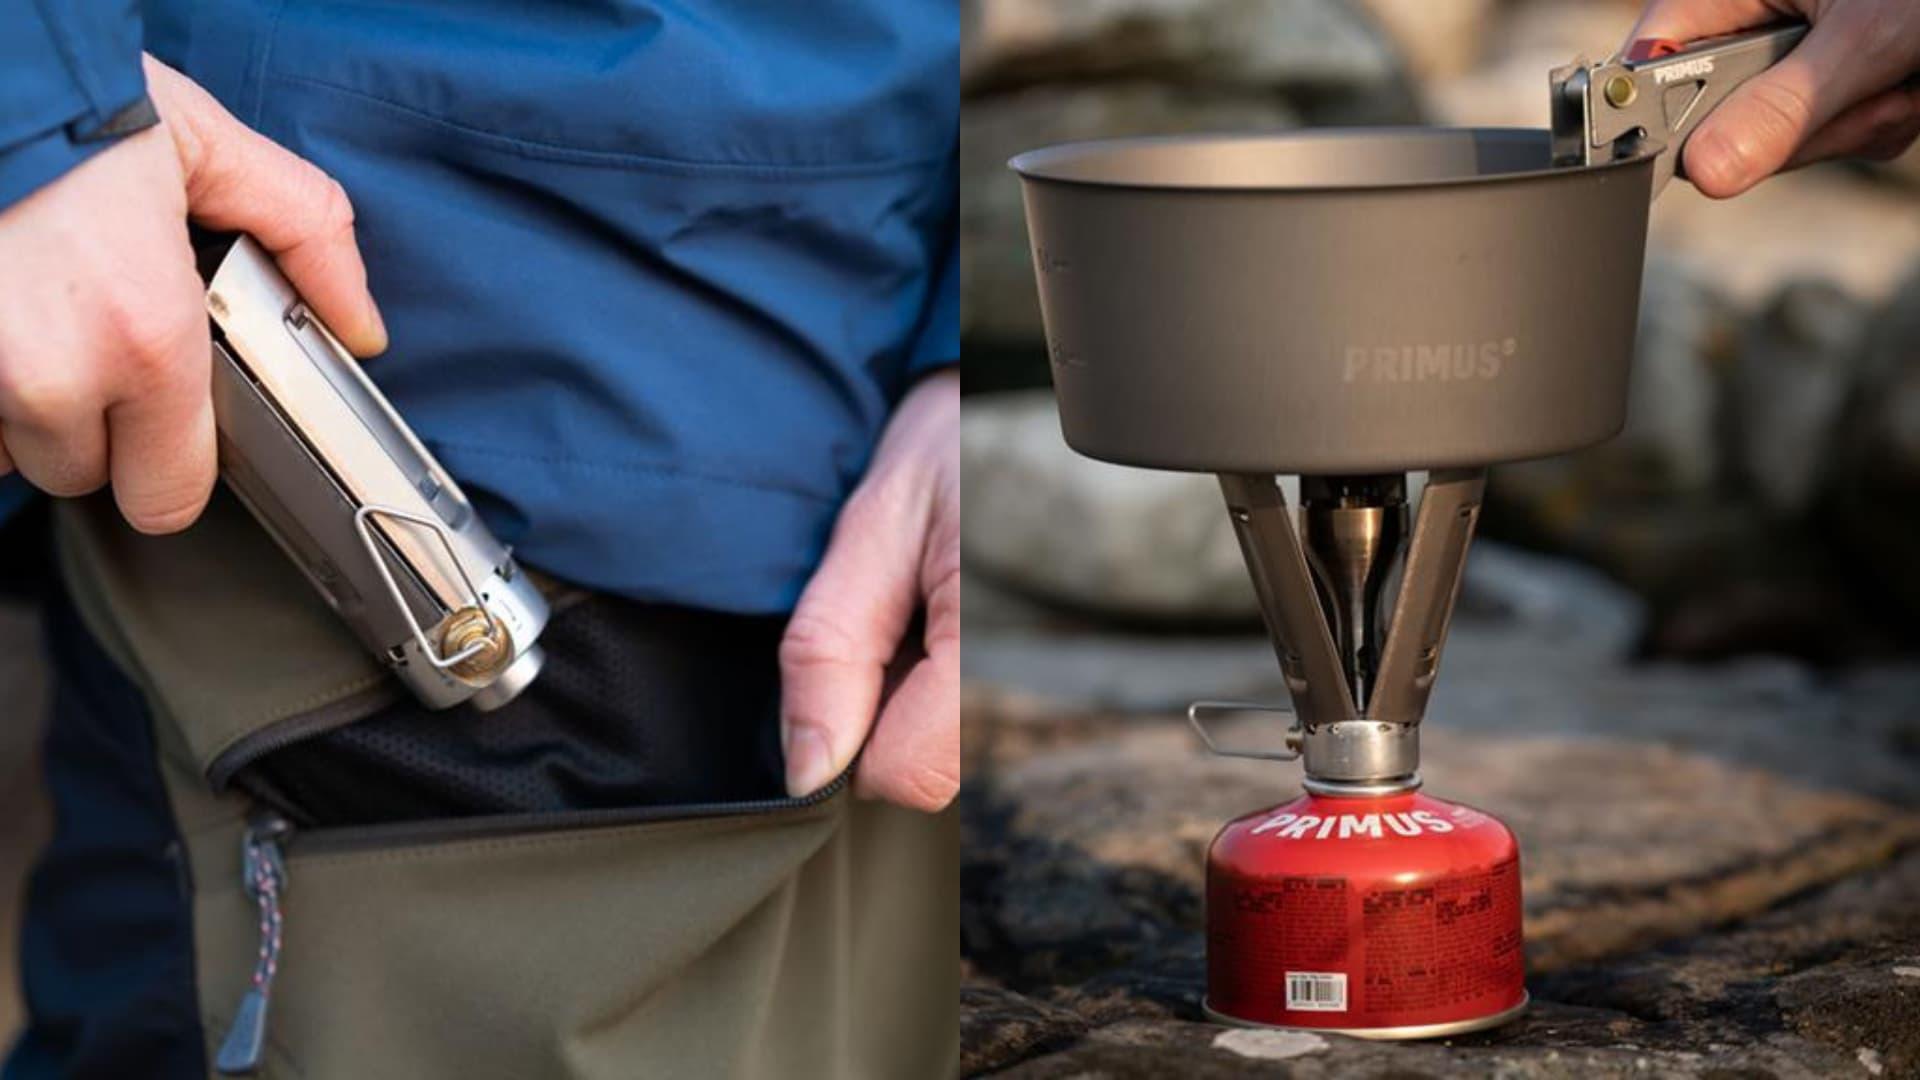 split image on left hand placing new primus firestick stove in pocket on the right cooking pot on top of primus firestick stove